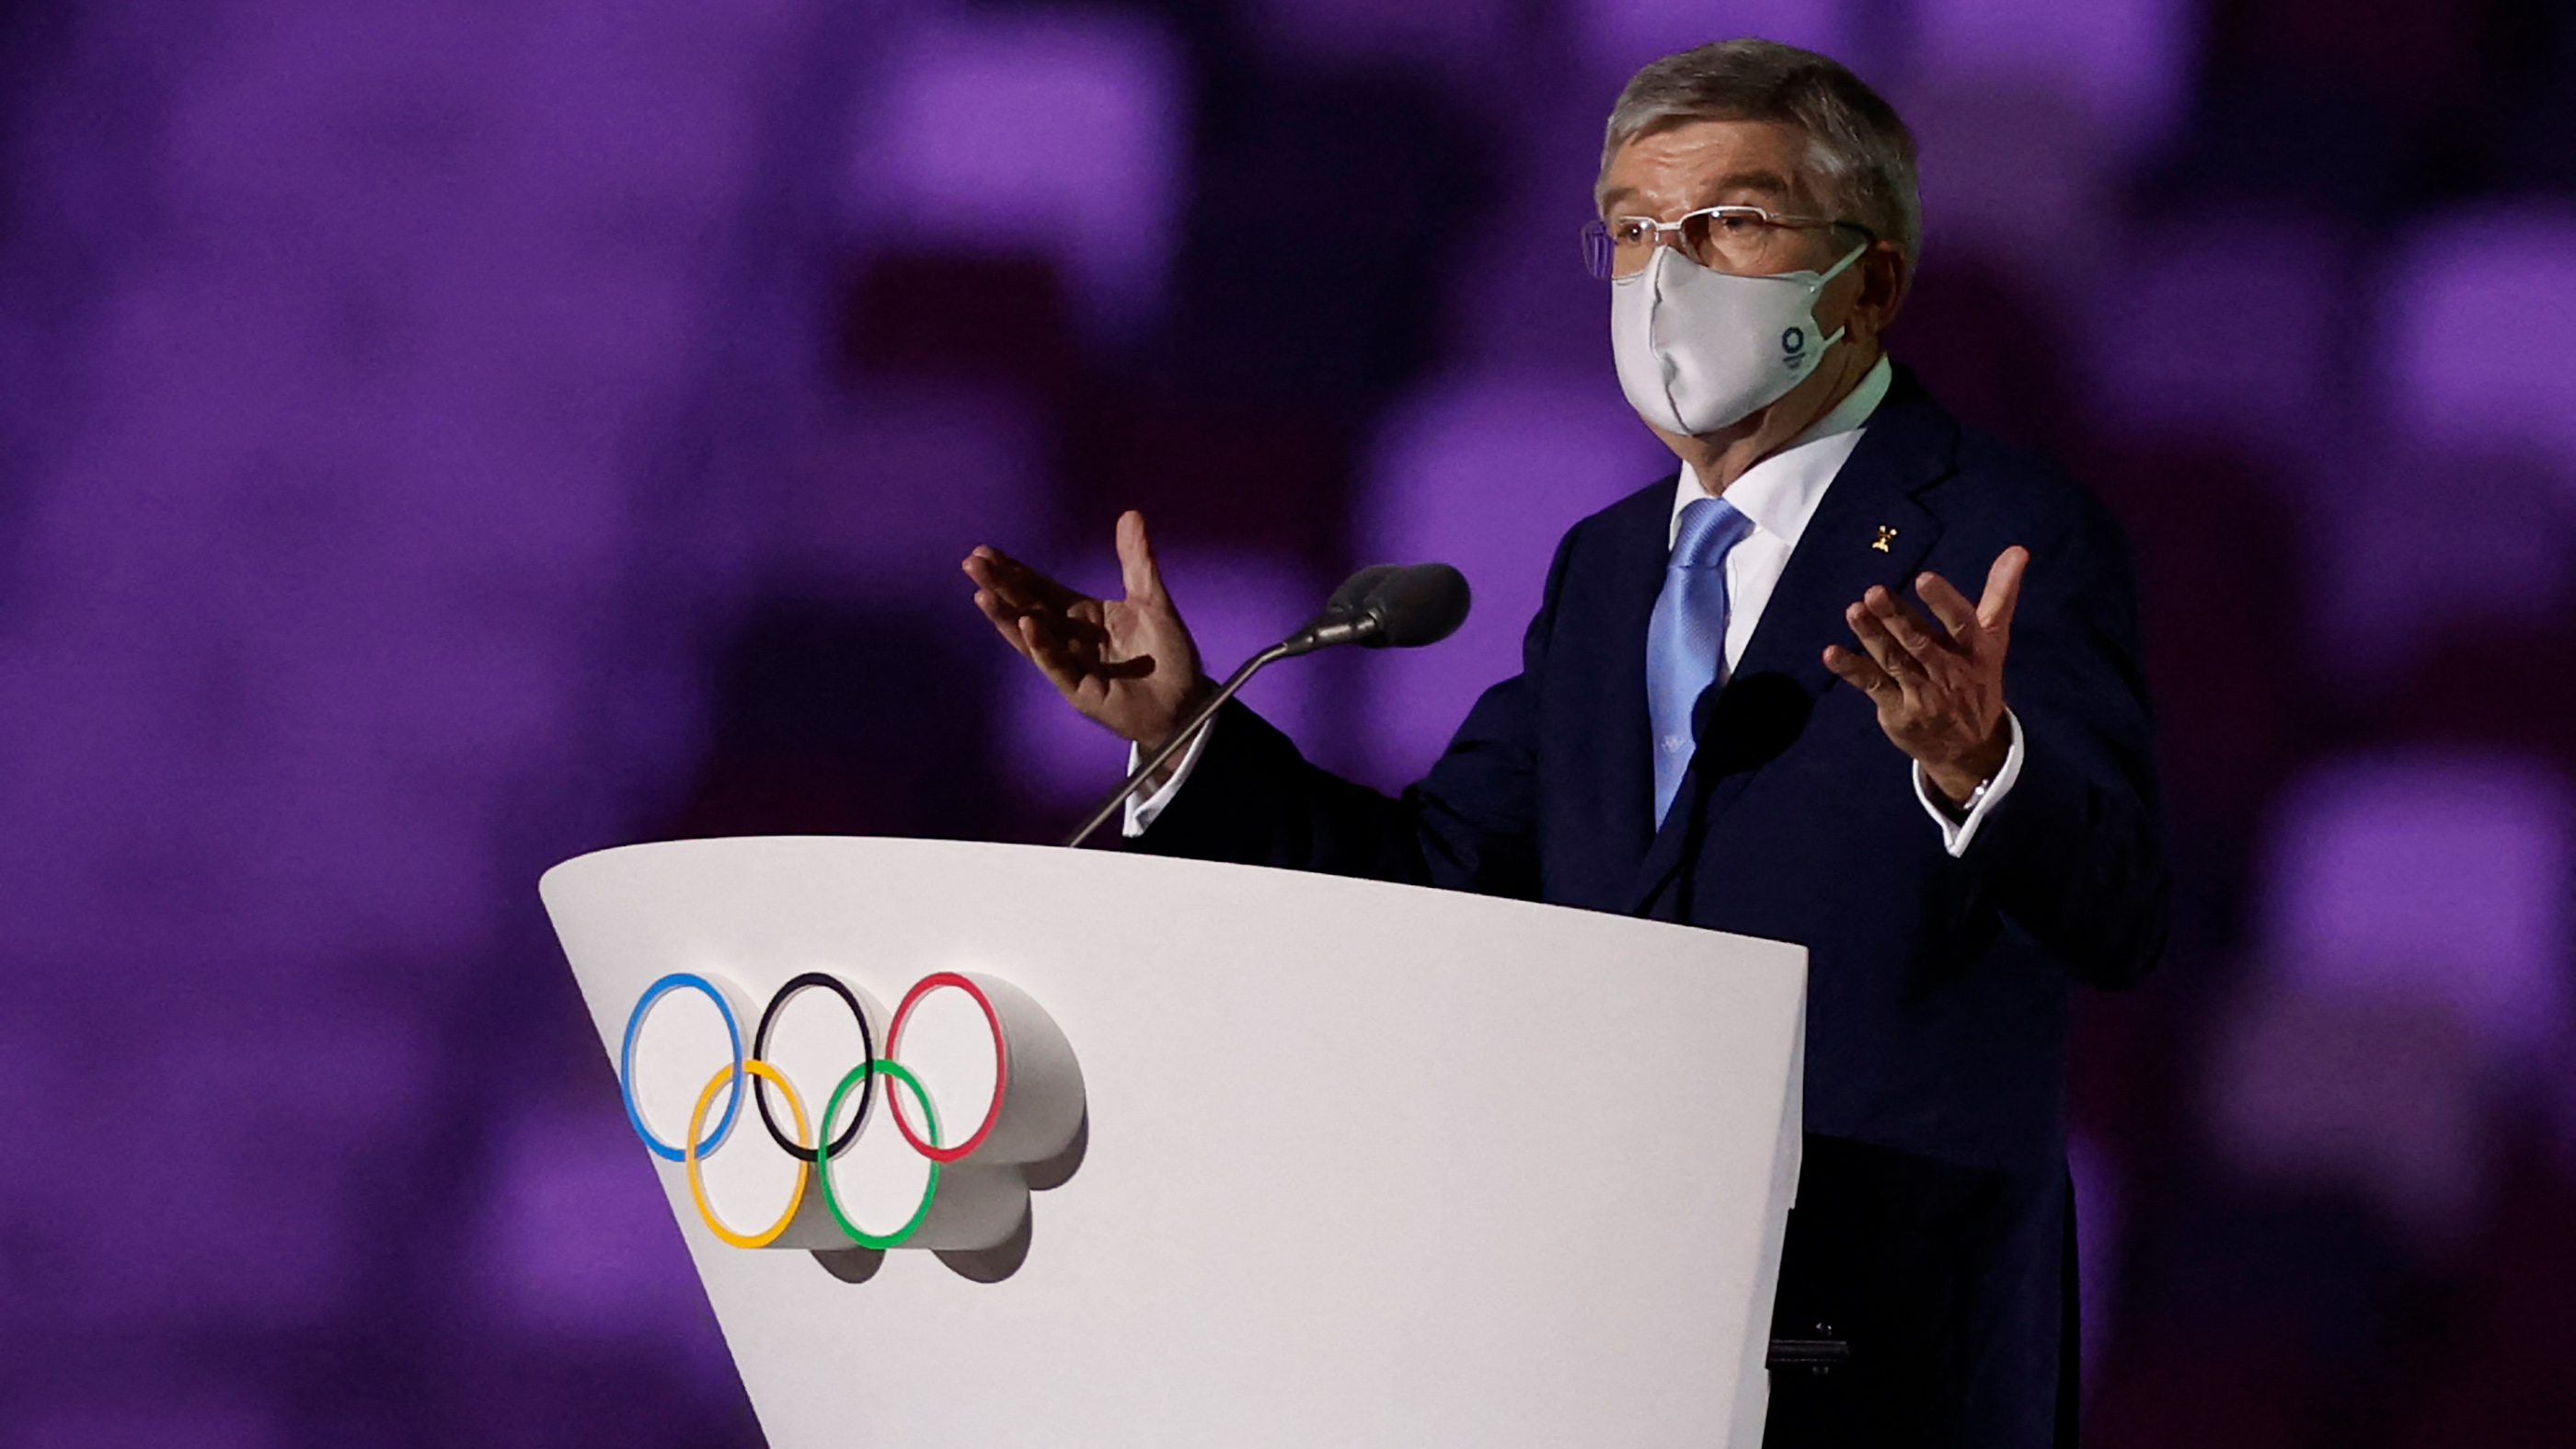 President of the International Olympic Committee Thomas Bach delivers a speechduring the Opening Ceremony on July 23.